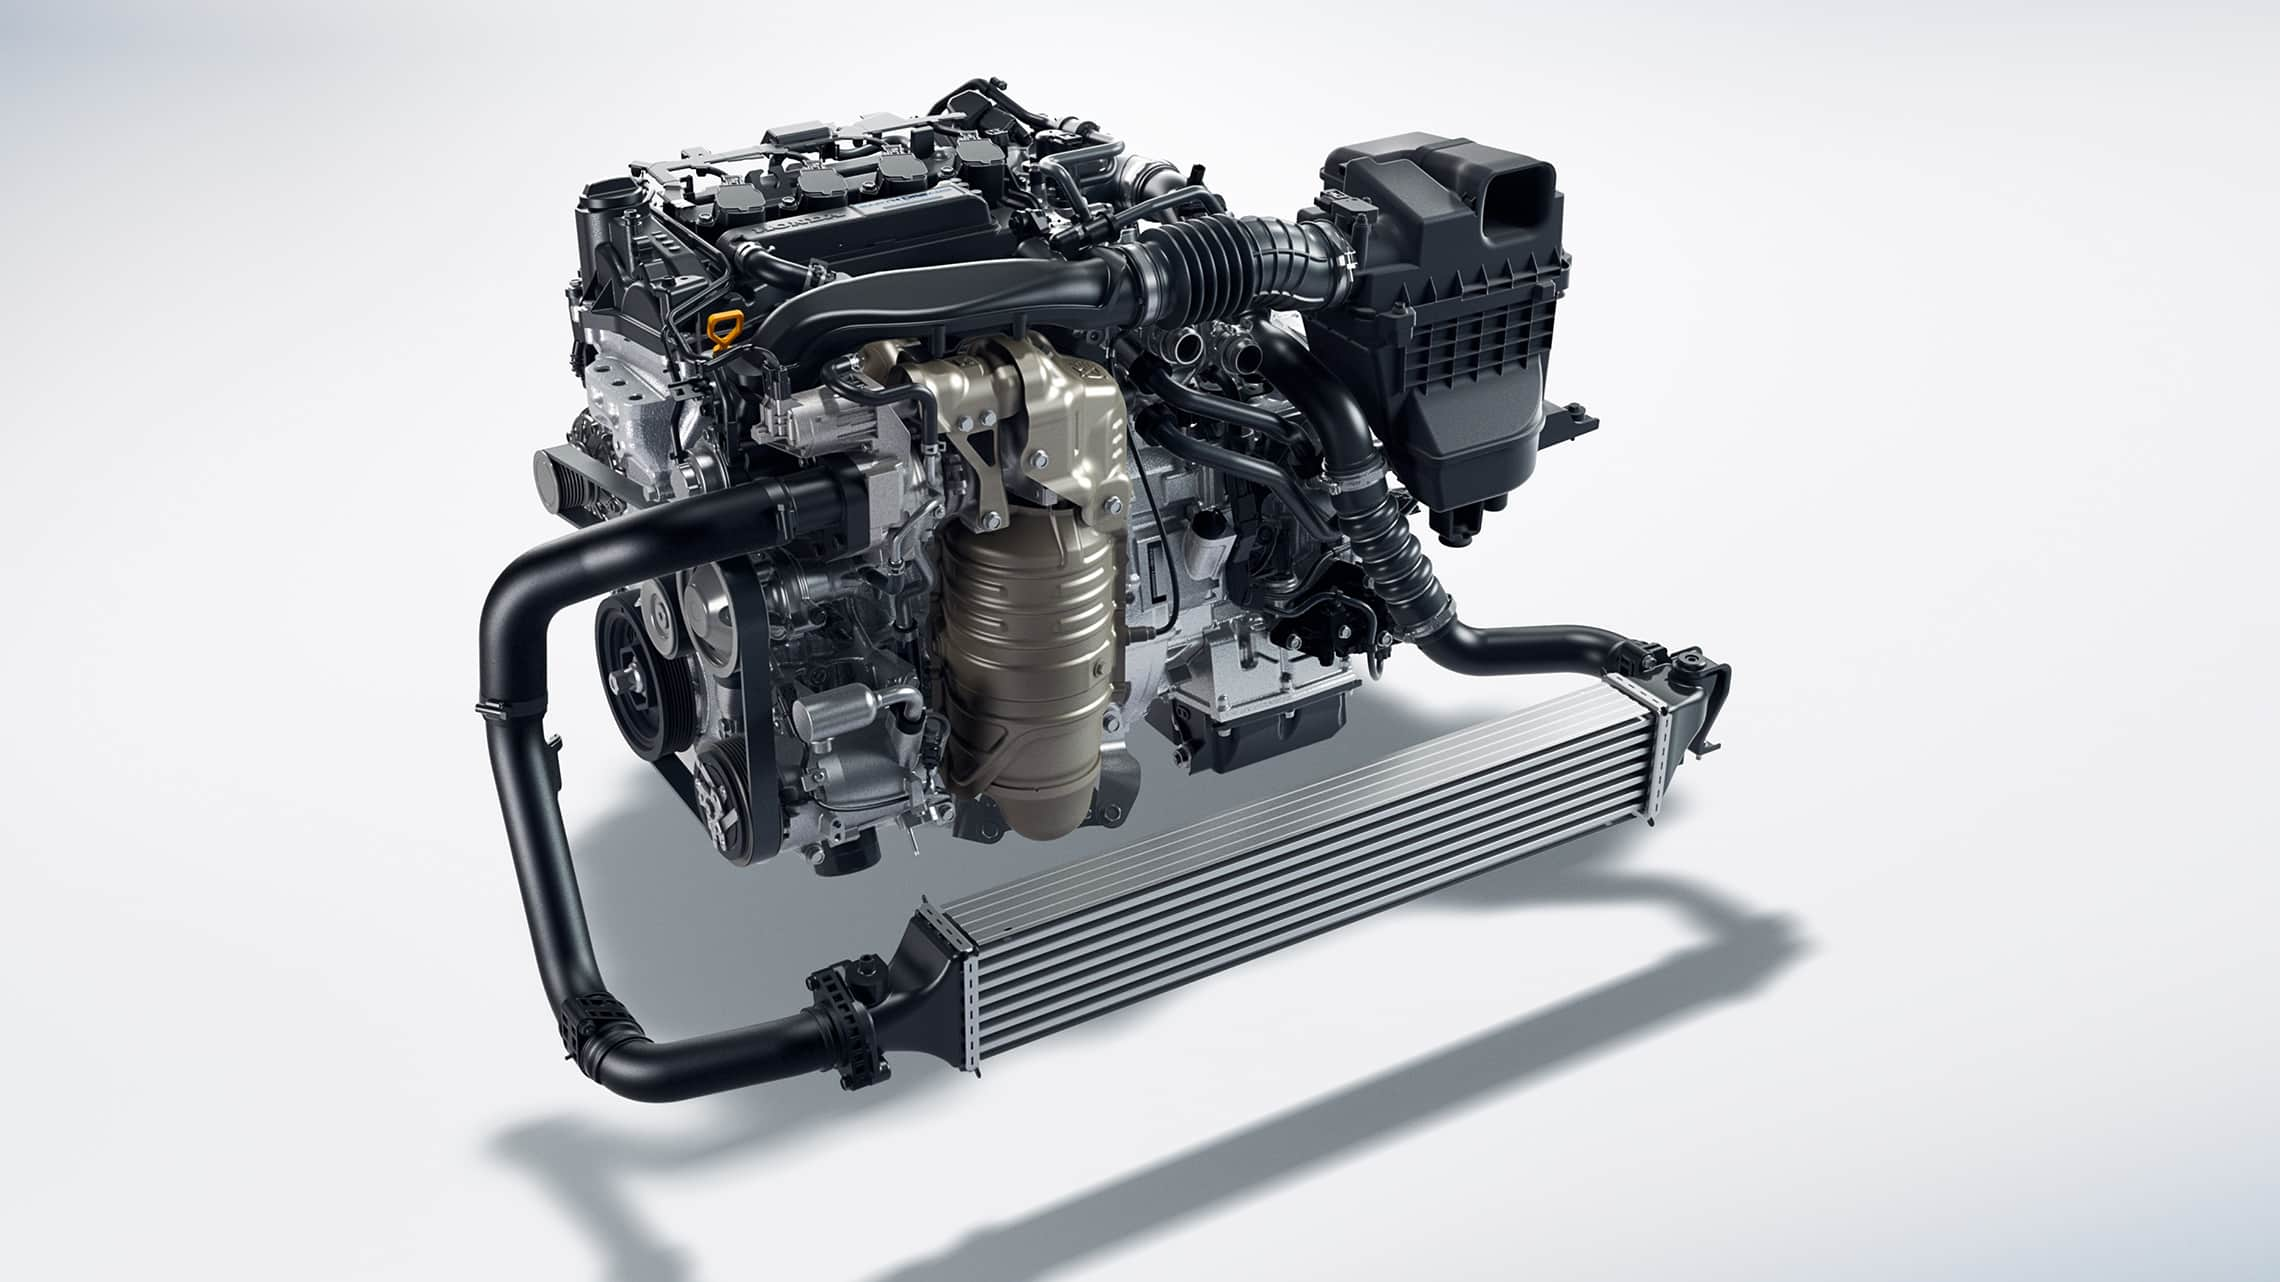 1.5-liter turbocharged and intercooled 4-cylinder engine for the 2021 Honda Civic Touring Sedan.